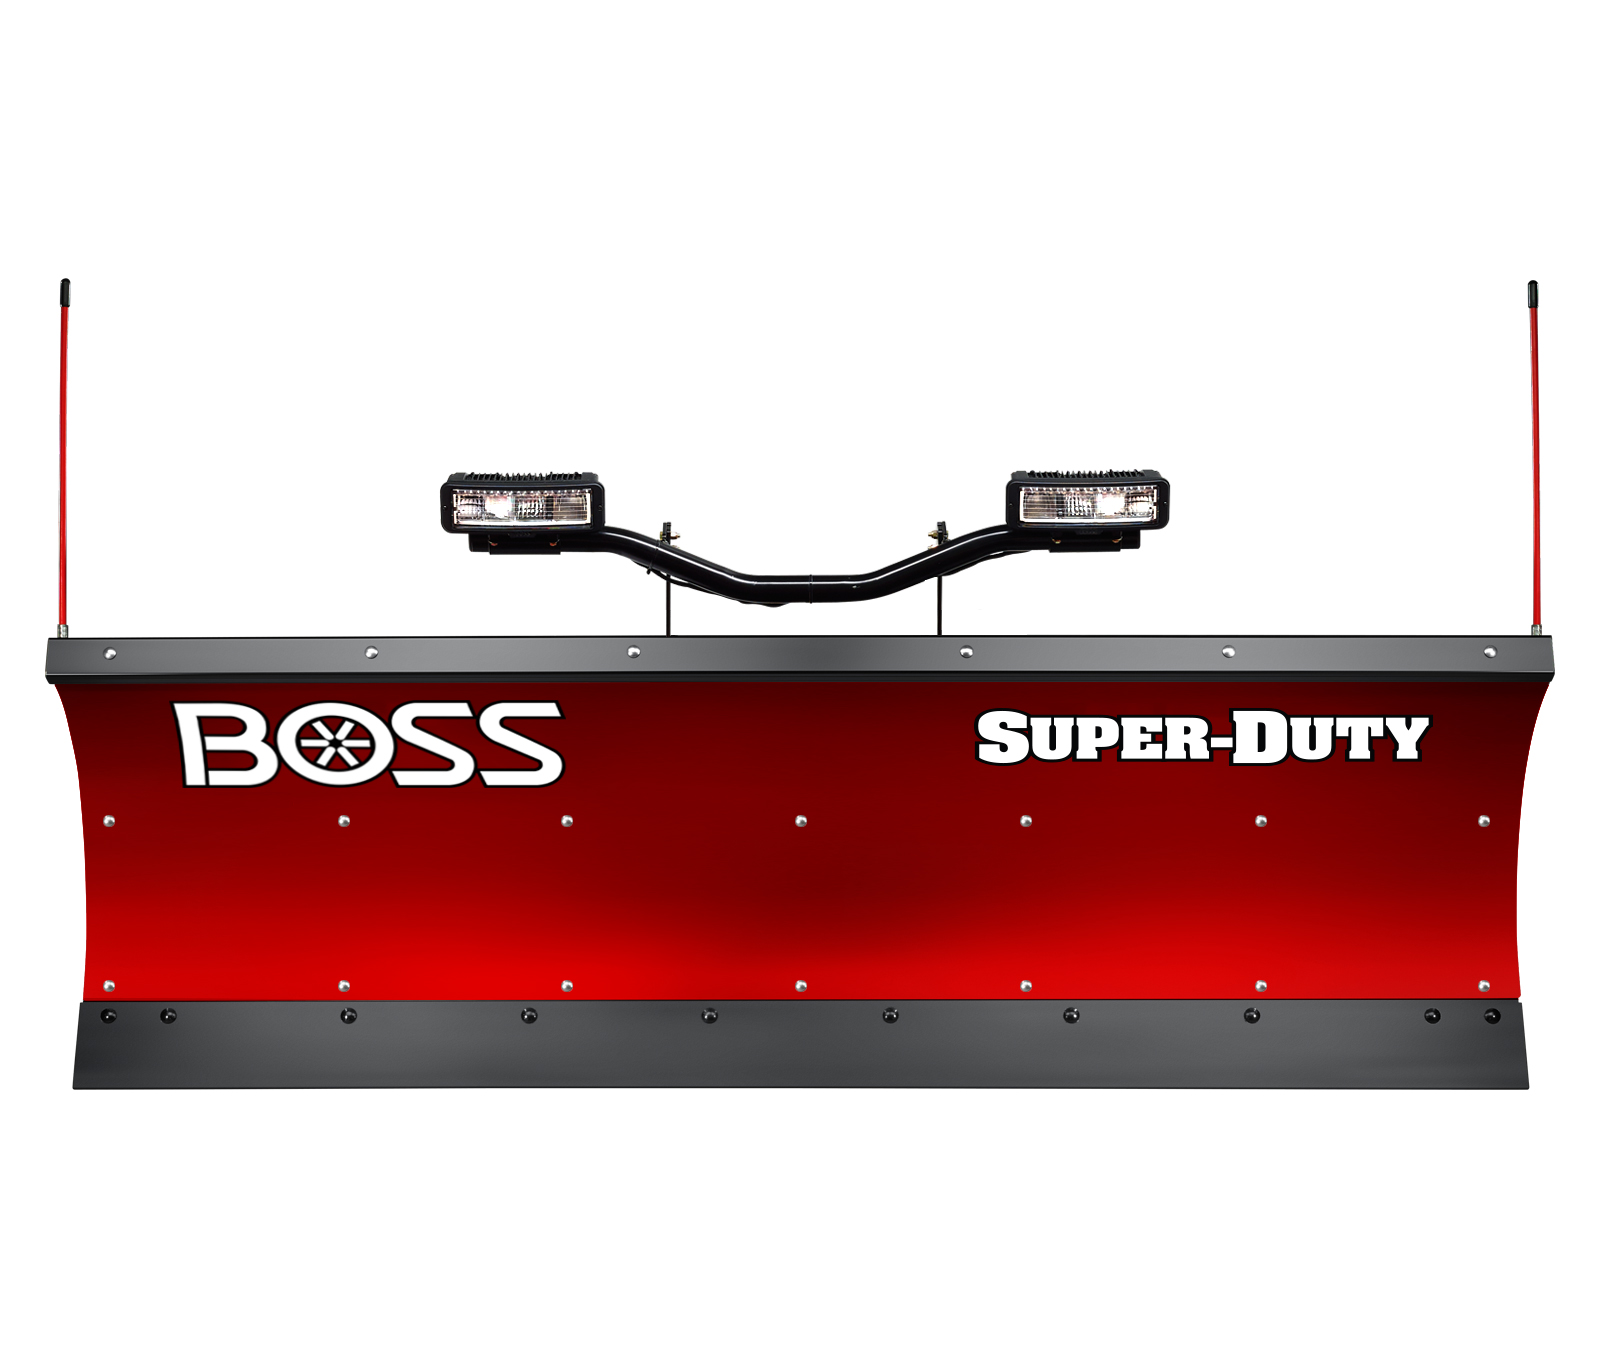 Boss Plow Wiring Diagram 2000 Ford 34 Images Snow Harness Snowplow Super Duty Plows Polyashxmw700mh599hash17579bef749ad21a5e86beae94dbc8453442bba5